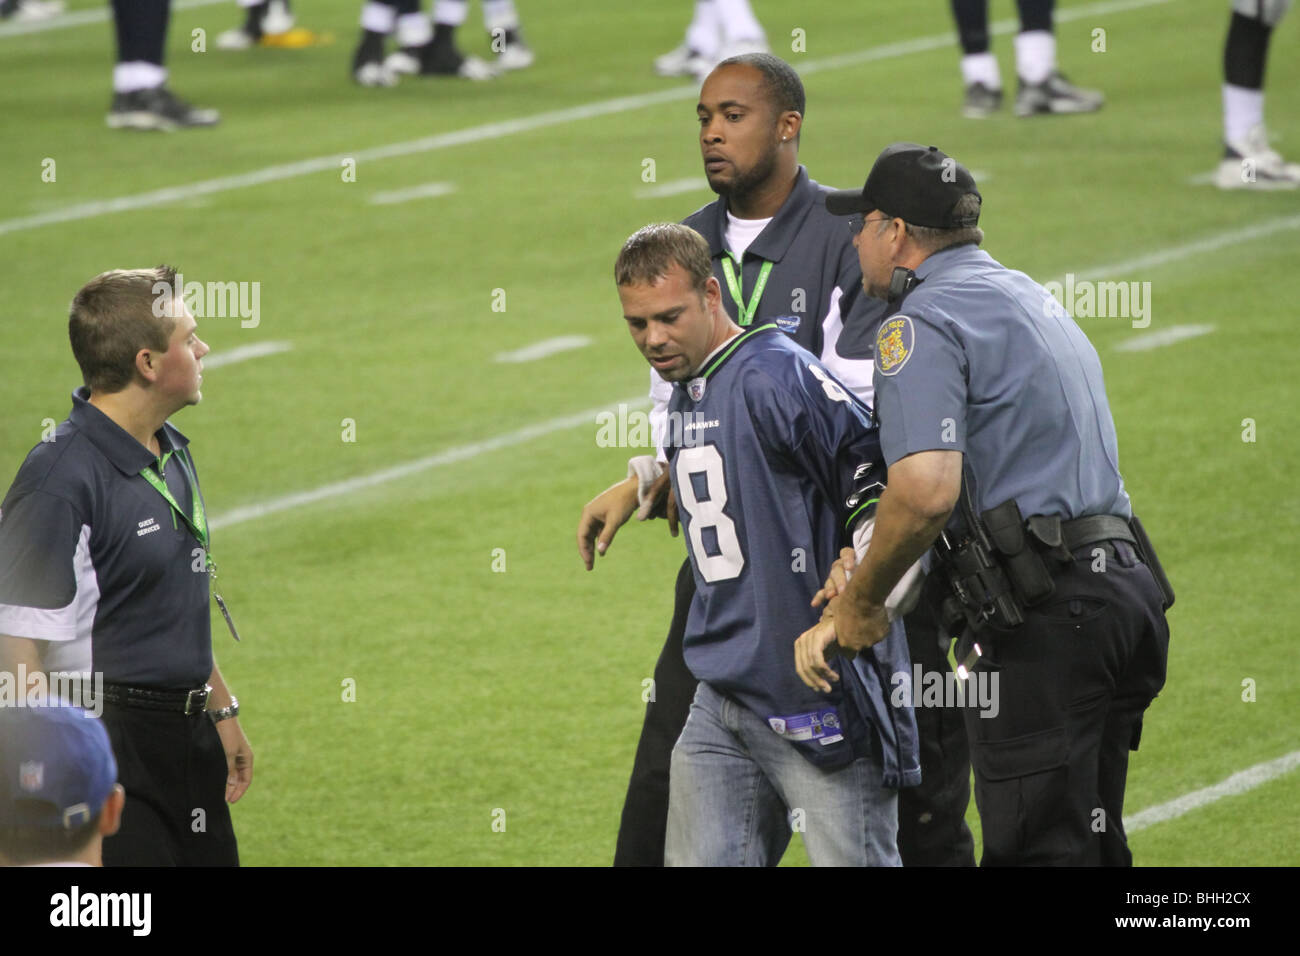 Drunk football fan arrested for running out on the field during a live NFL game at Qwest Field during Seahawks vs - Stock Image